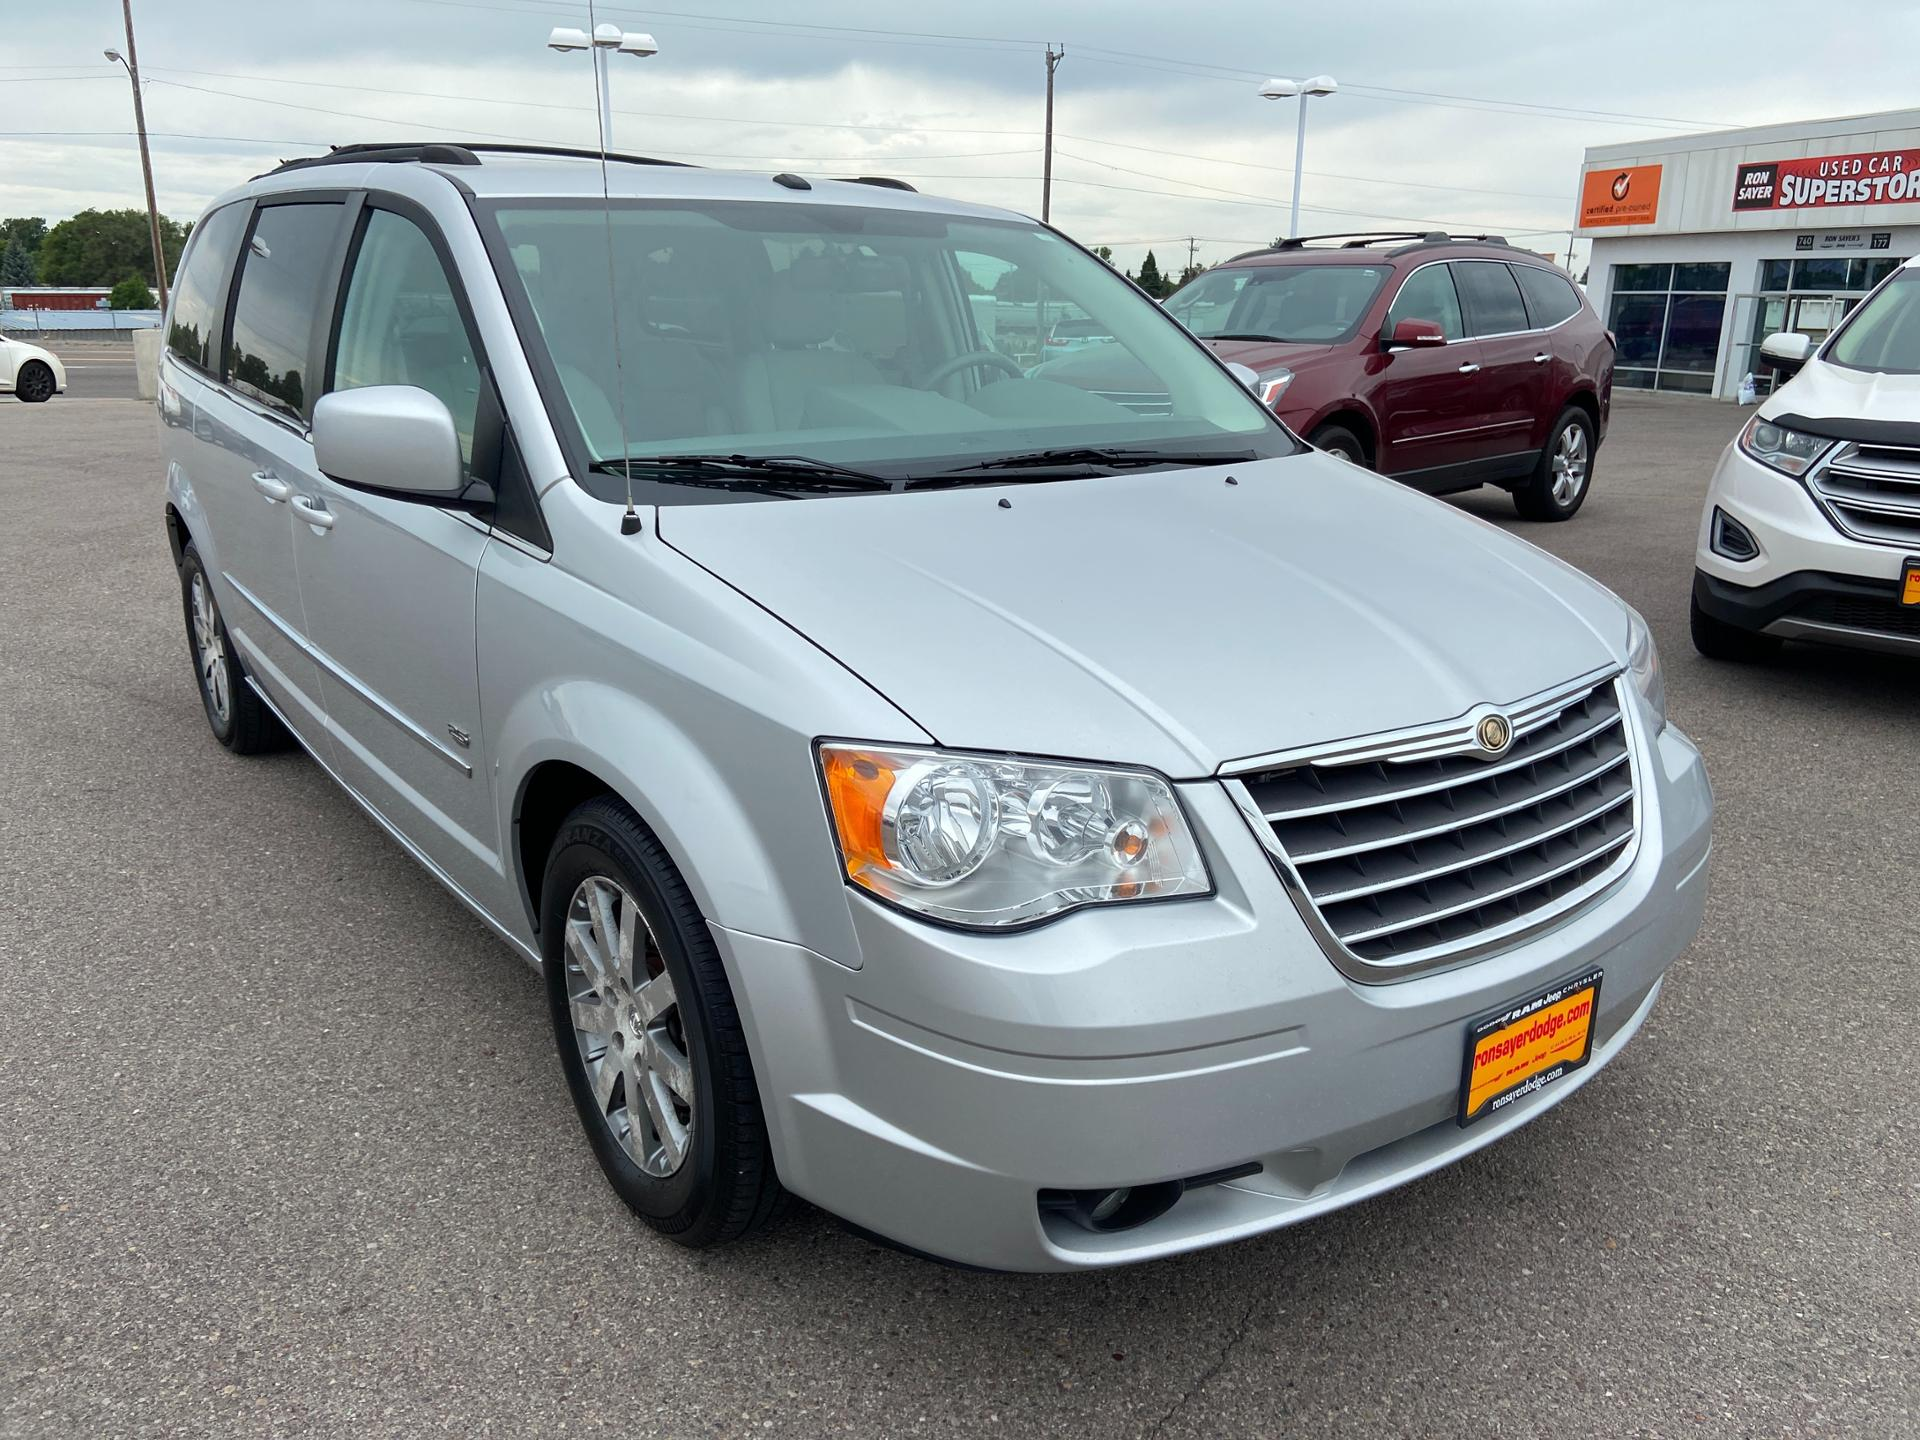 Pre-Owned 2009 Chrysler Town & Country Touring 25th Anniversary Edition